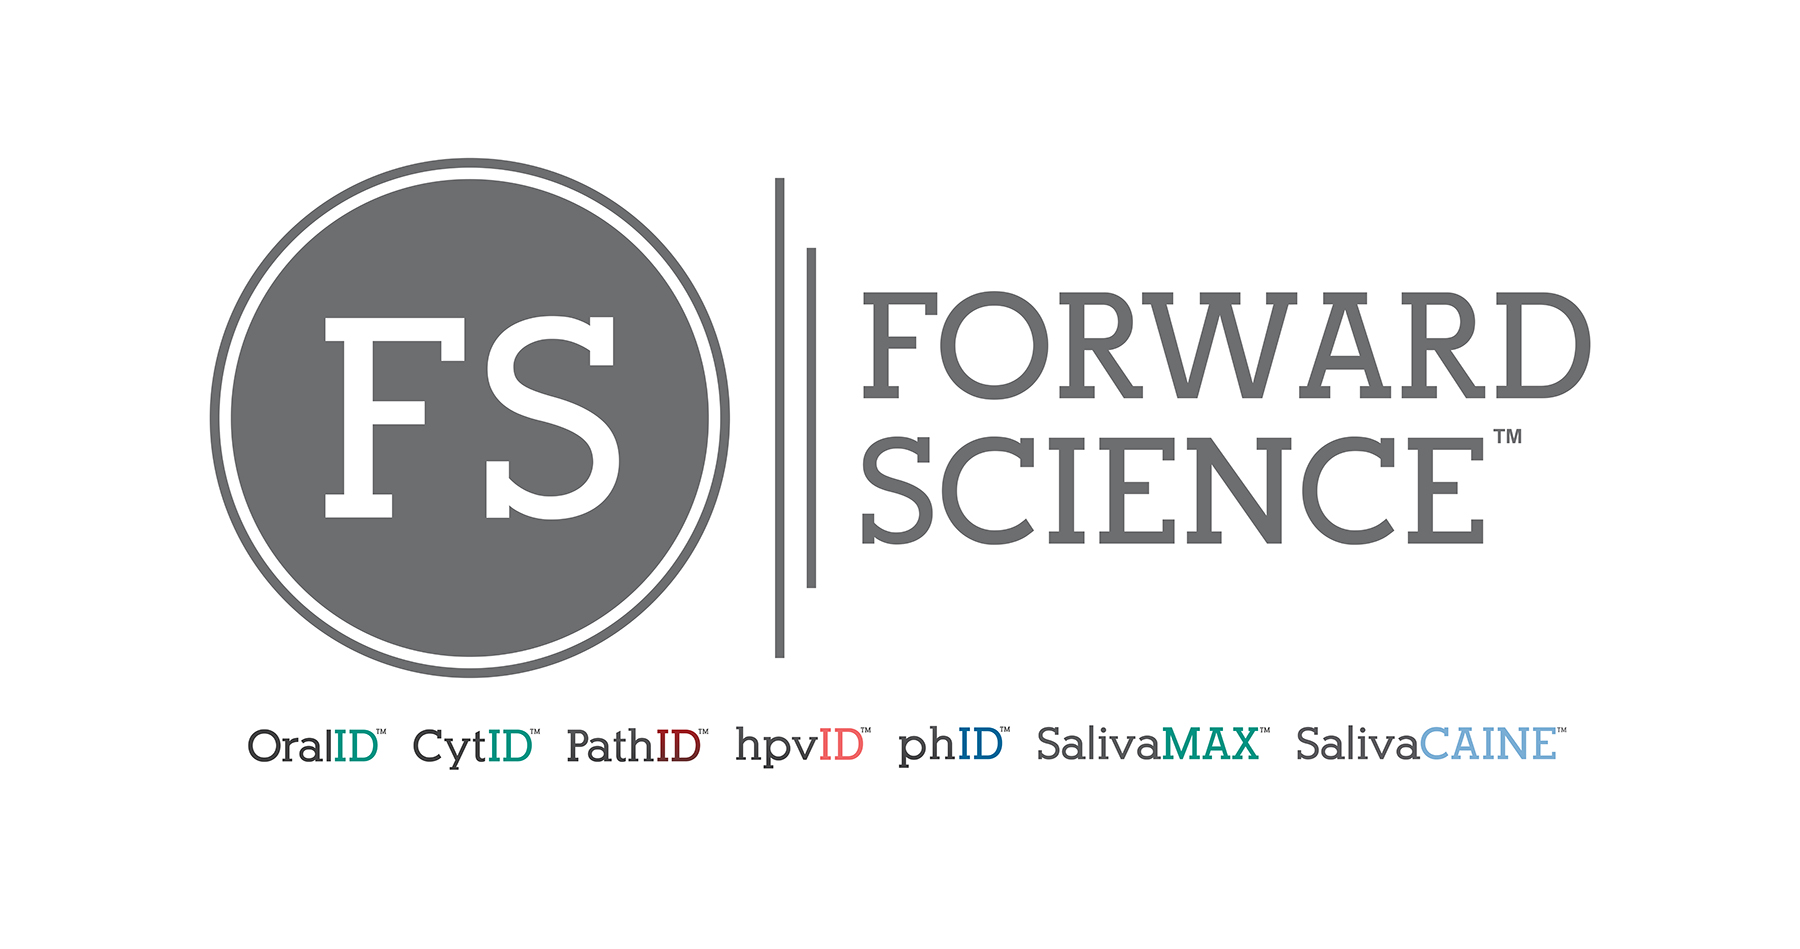 Forward Science